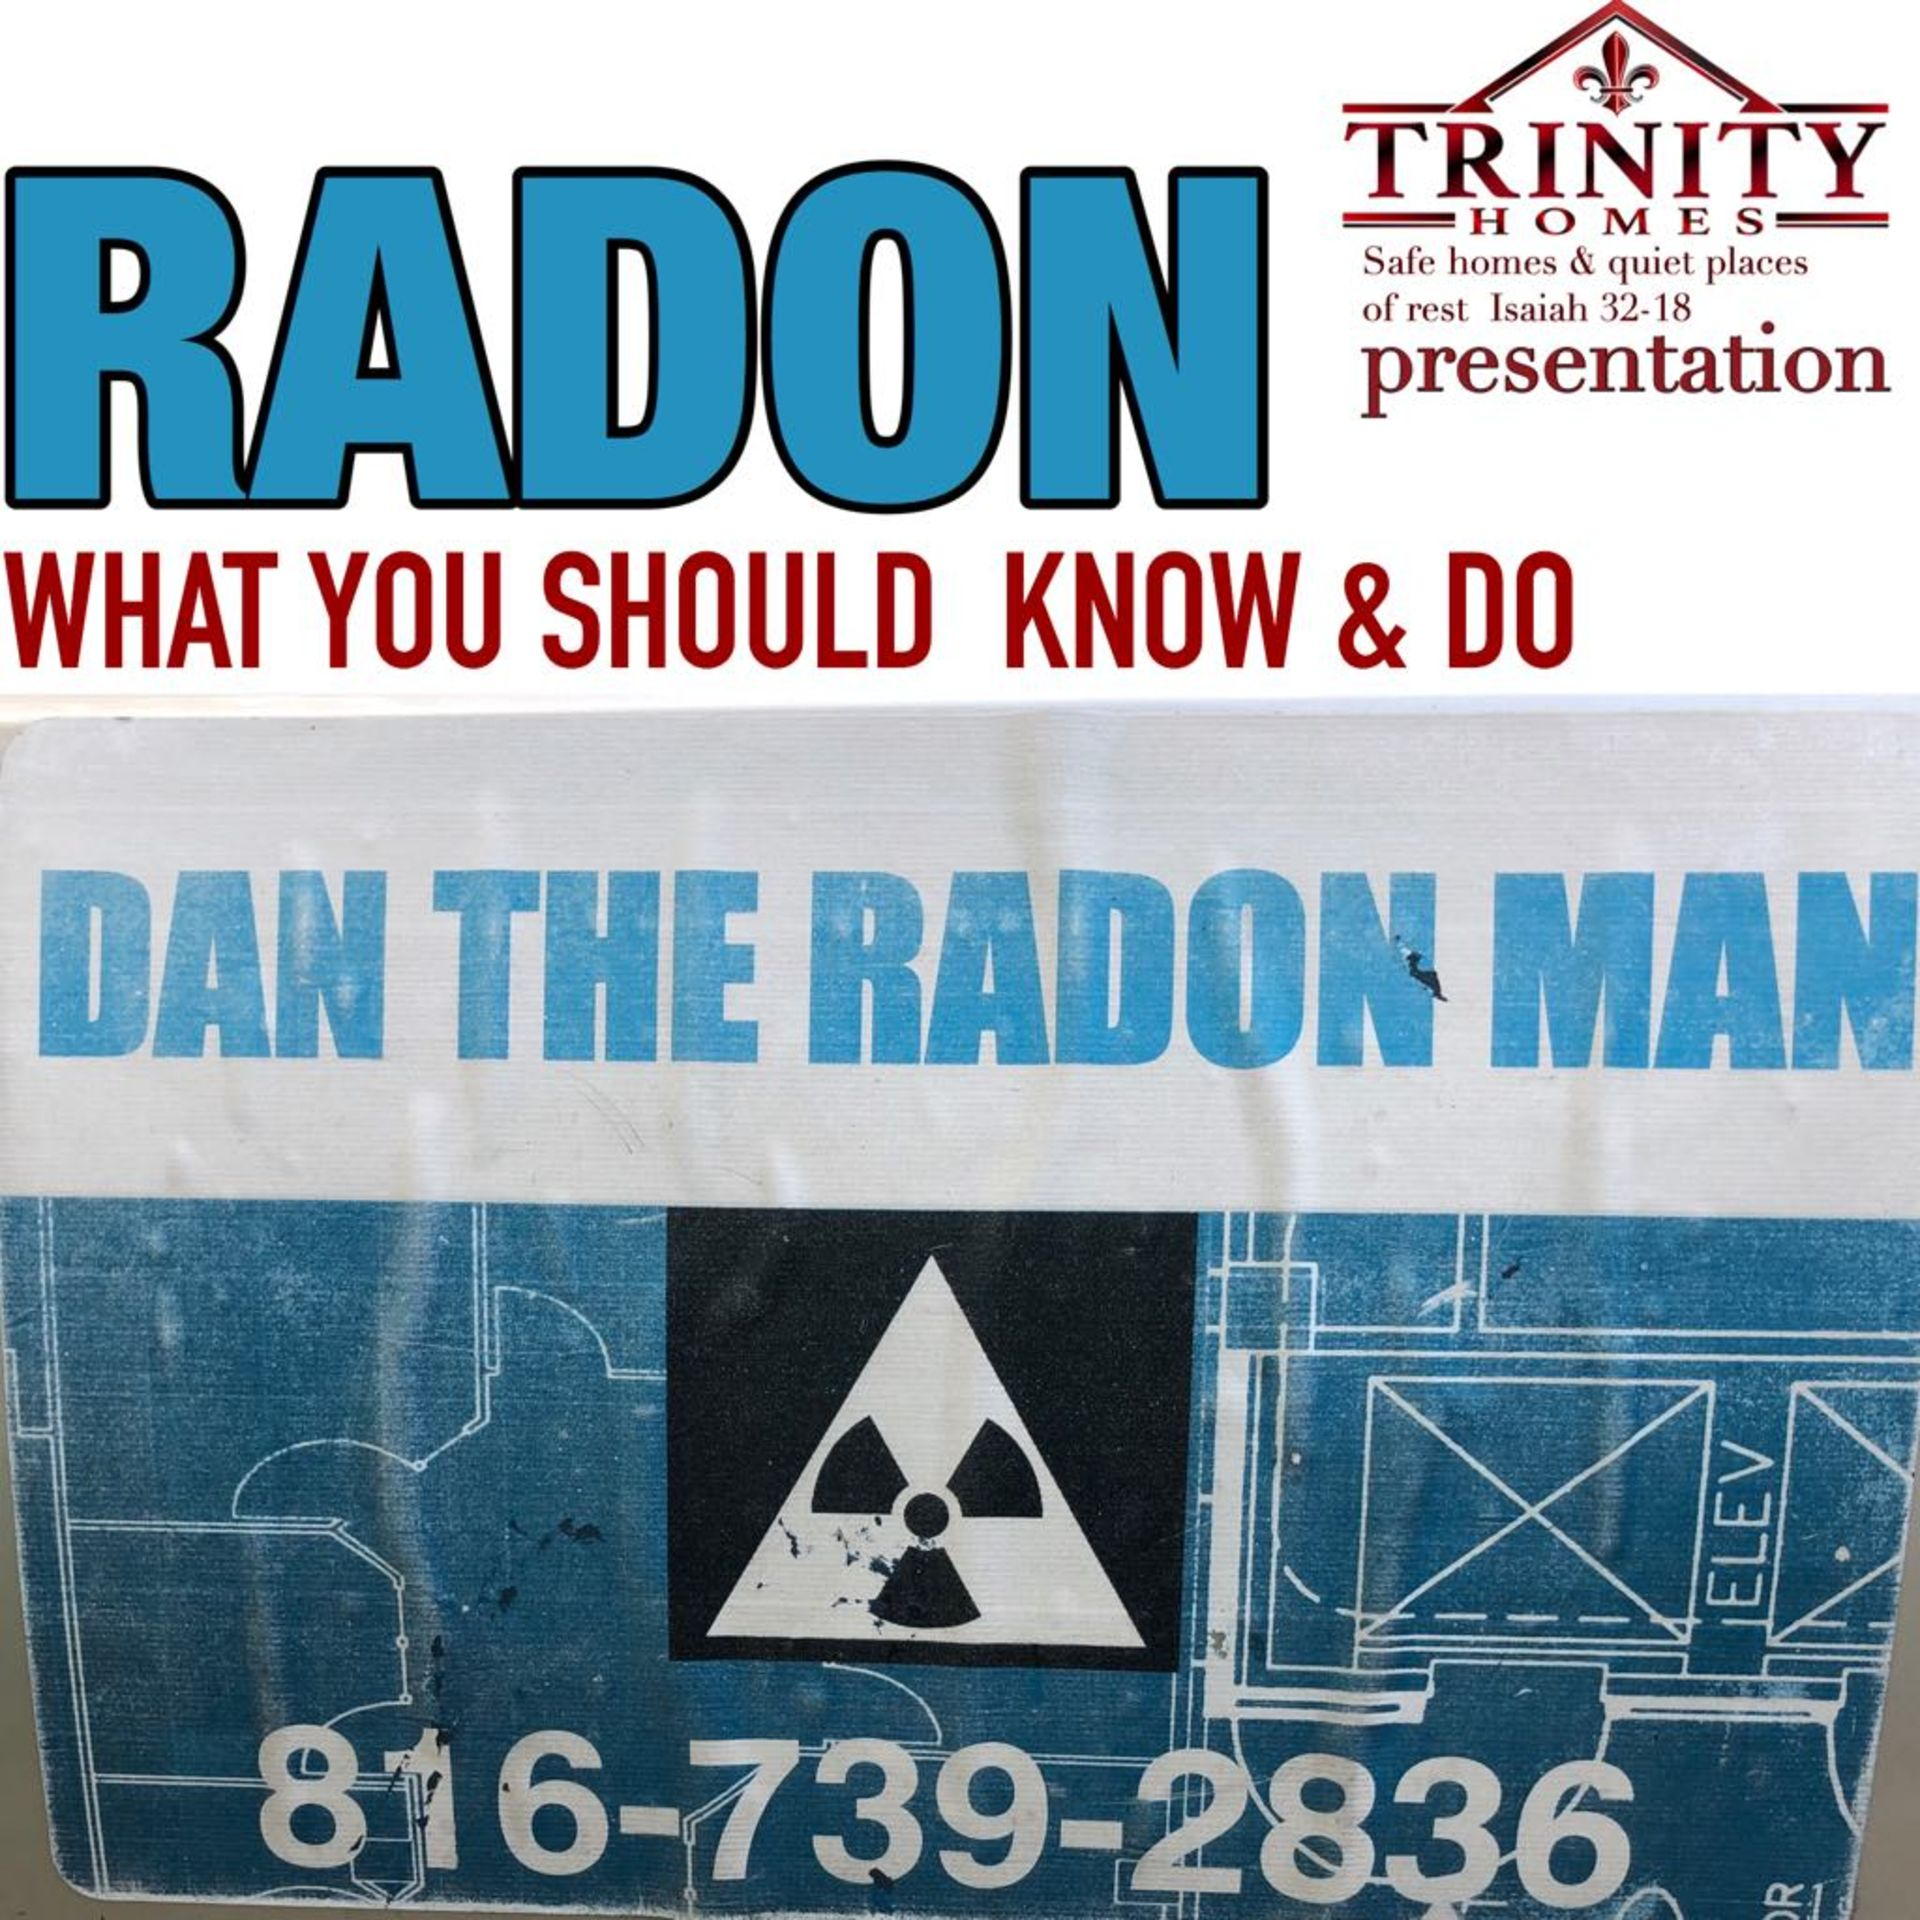 Radon what you should know and do by Dan the Radon Man – A Trinity Homes Keller Williams presentation